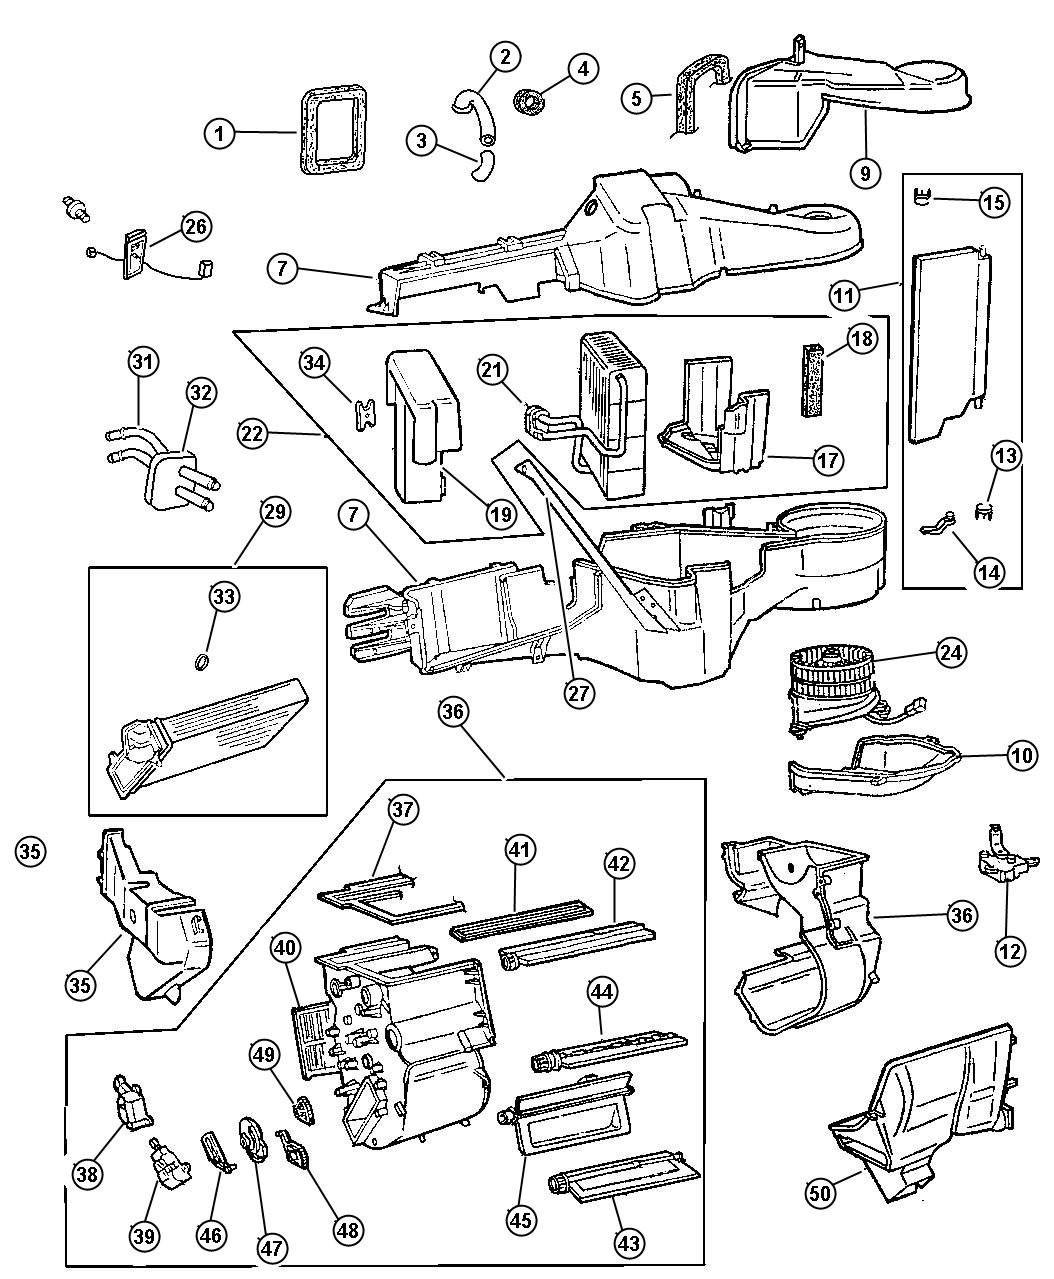 Plymouth Voyager How To Remove Heater Core